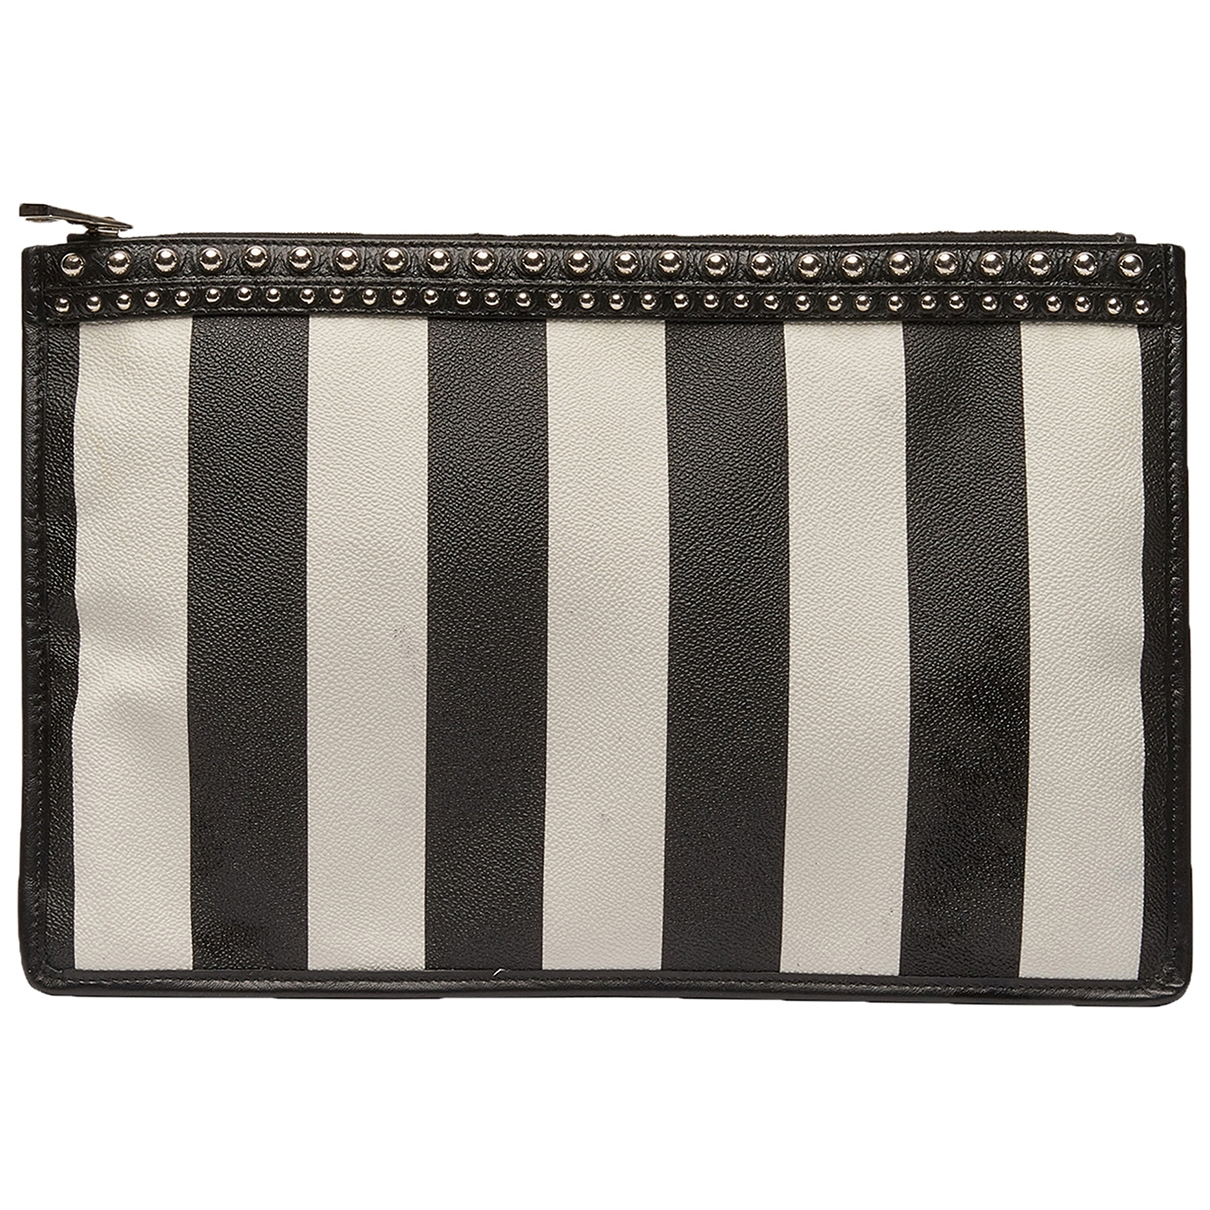 Givenchy \N Clutch in  Bunt Synthetik